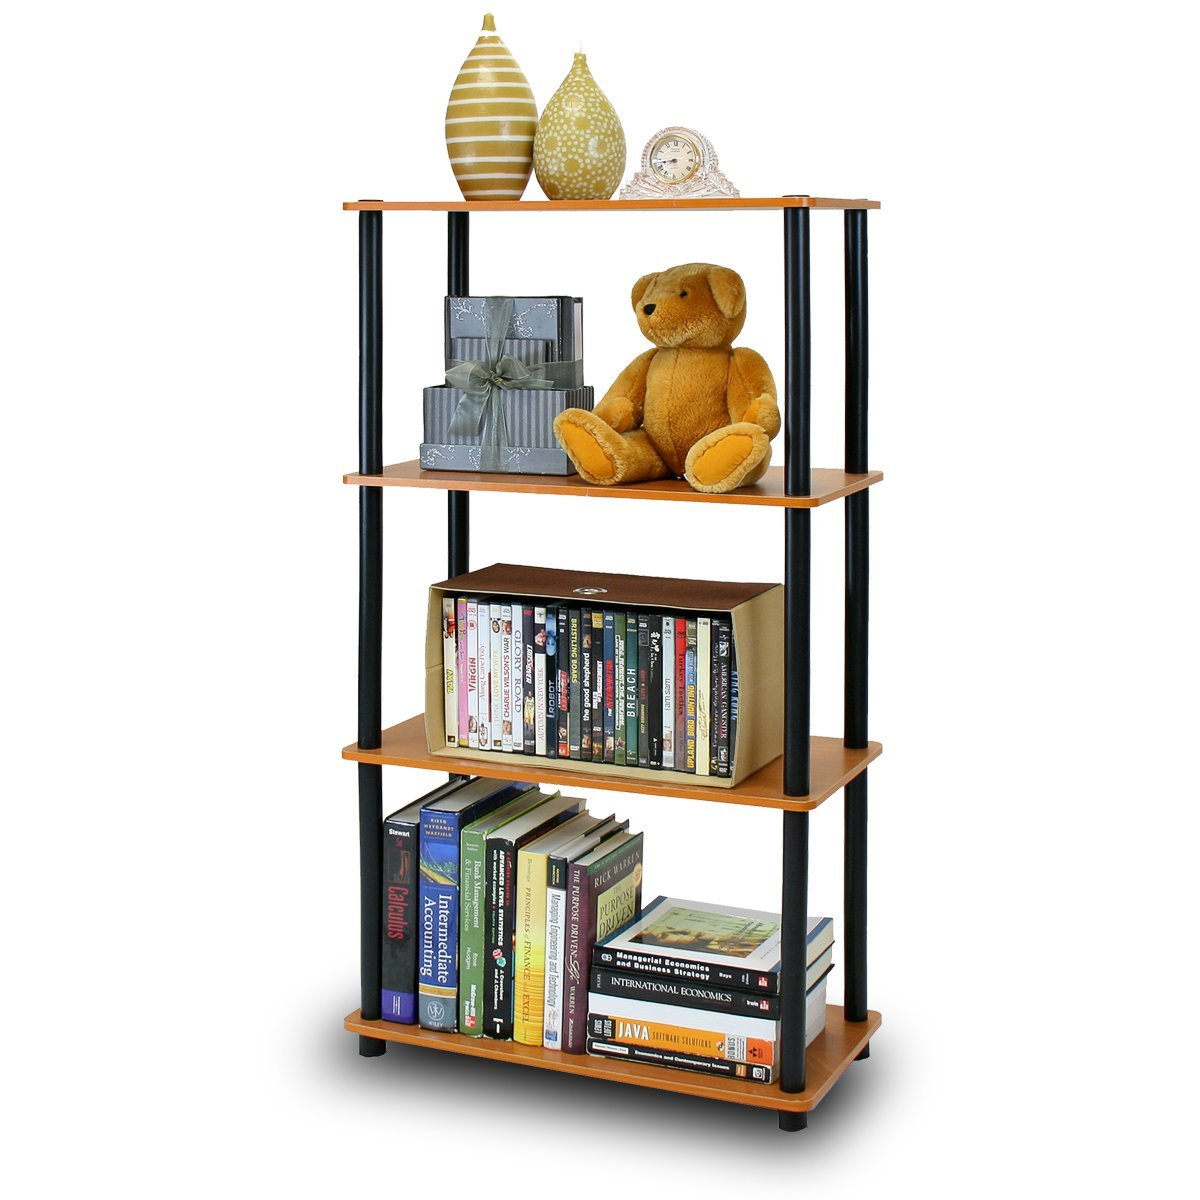 3 layers bookcase wood storage cabinets display shelves book